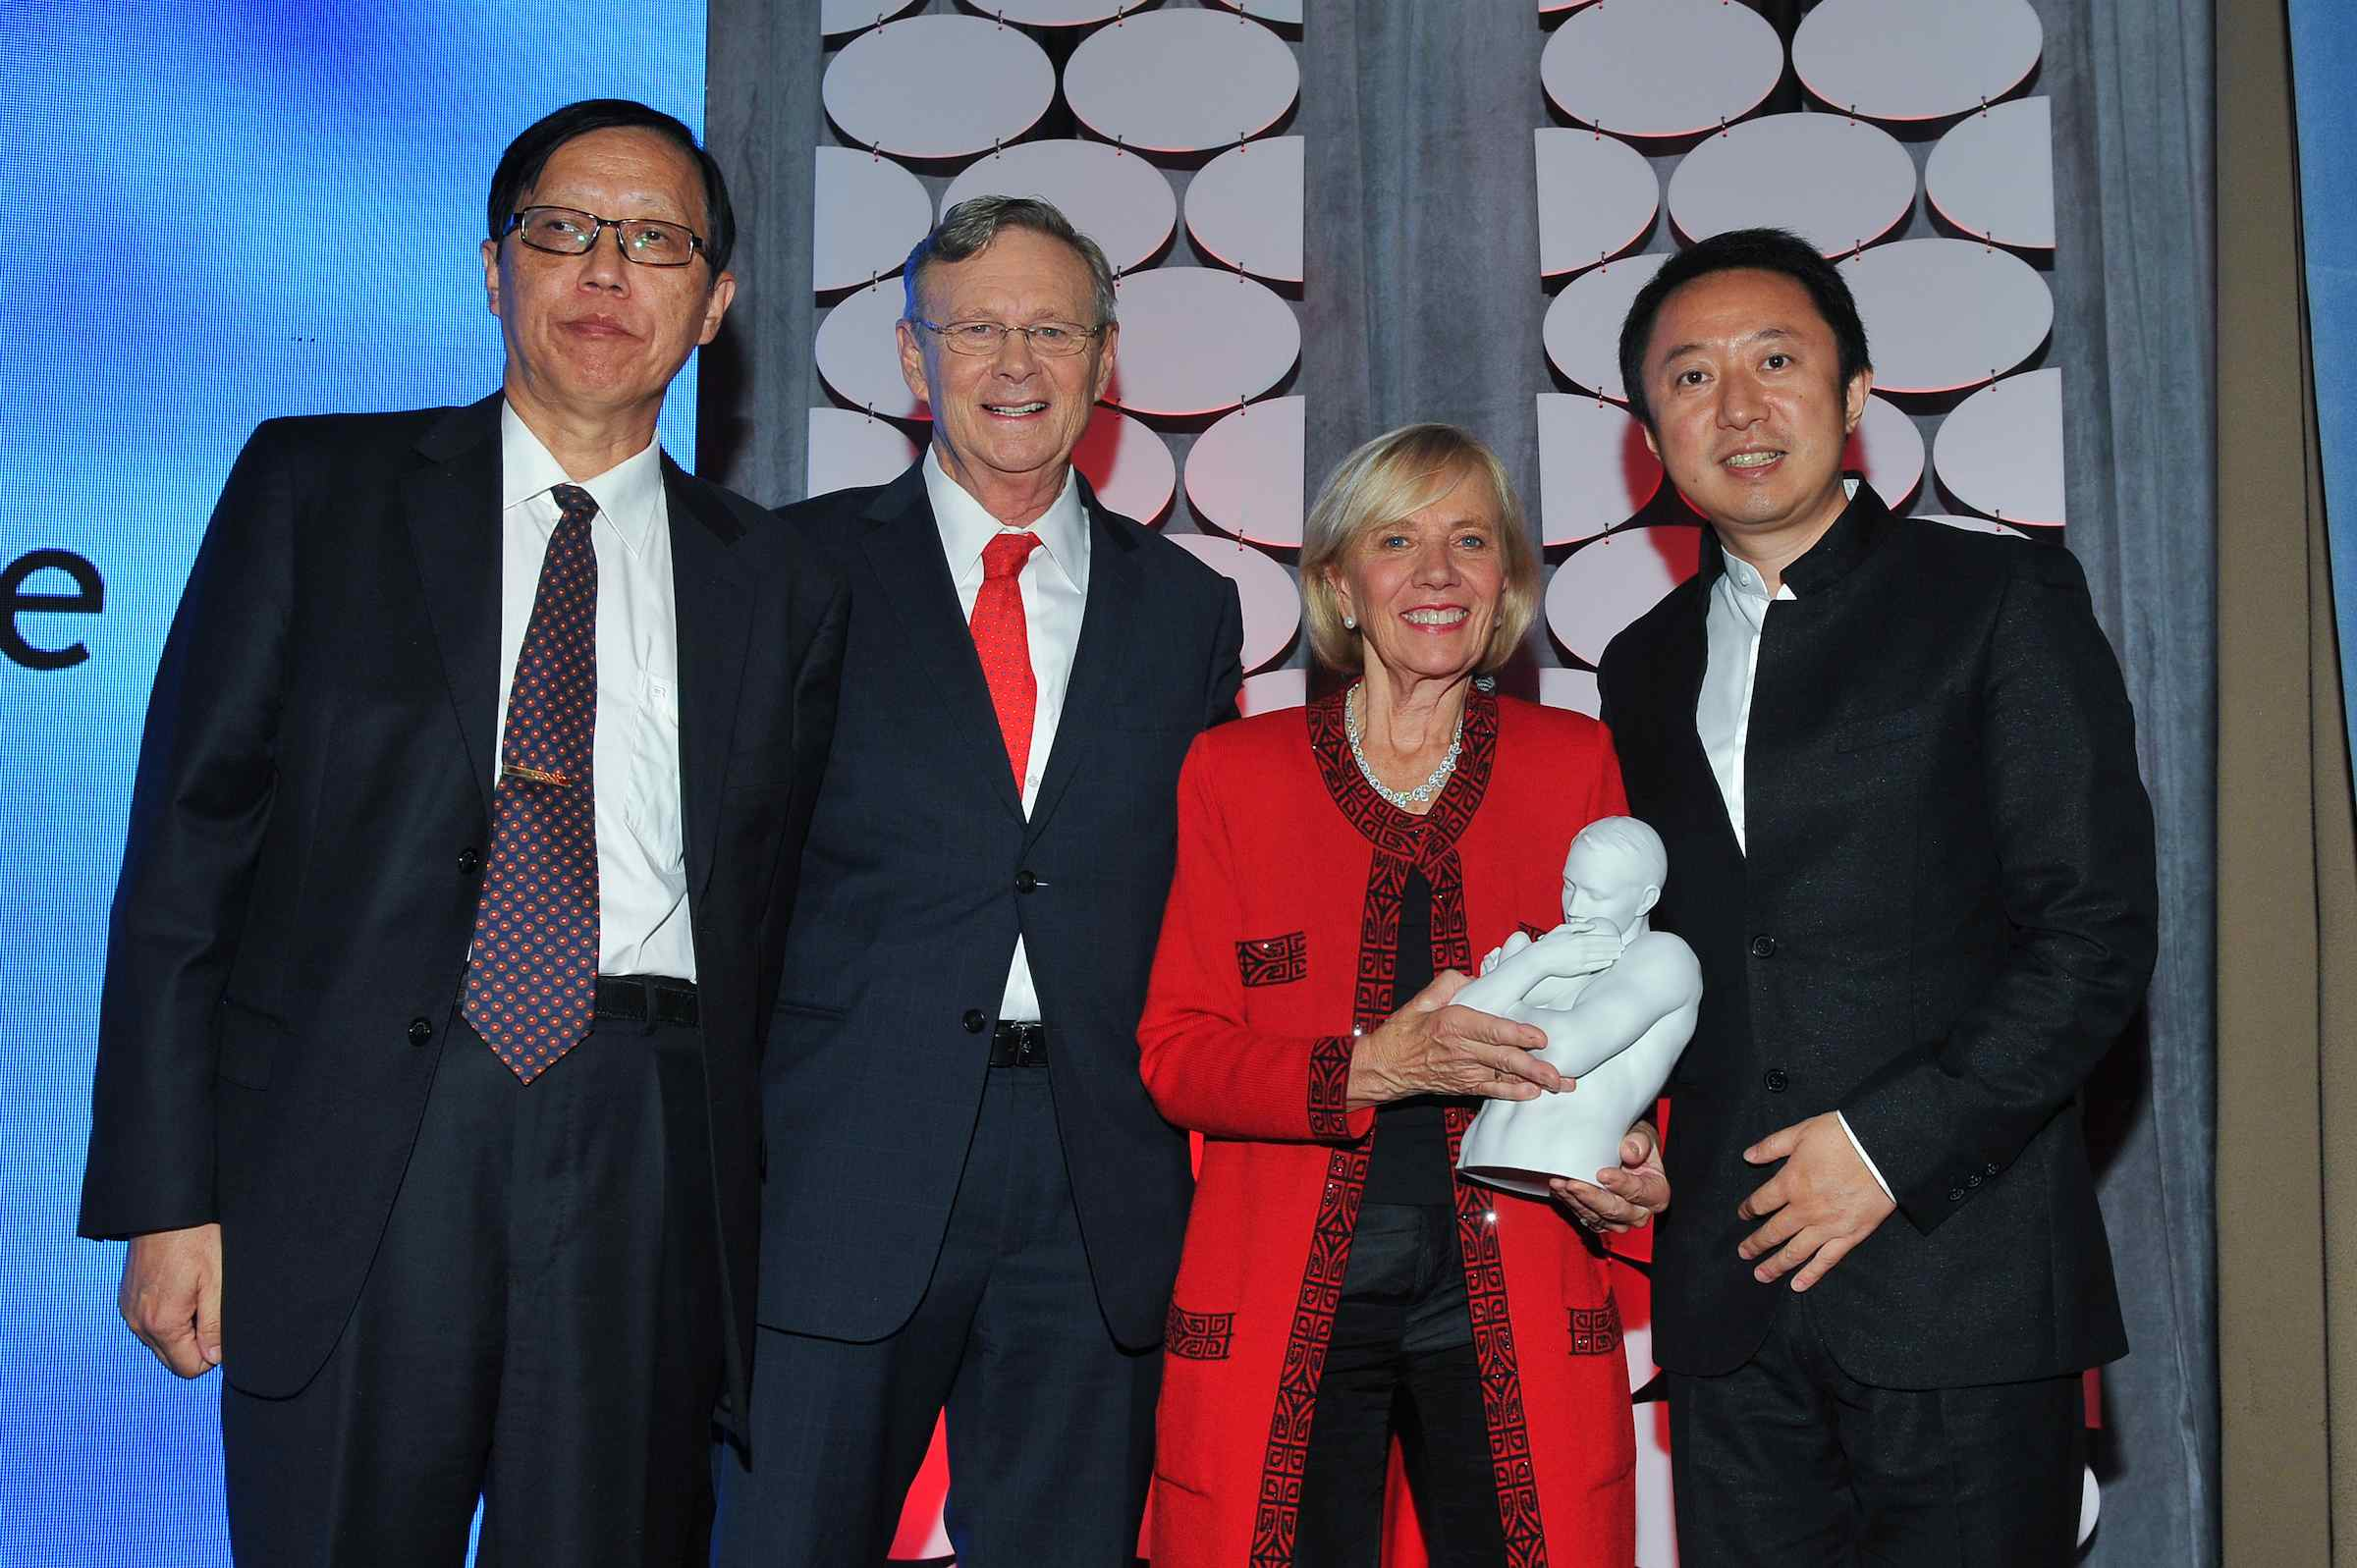 Mr Wang Lin (Chairman and Secretary of CCAFC), Dr. Bill and Kathy Mcgee ( Operation Smile Co-Founders), Mr. Li Ya (President of Ifeng.com)